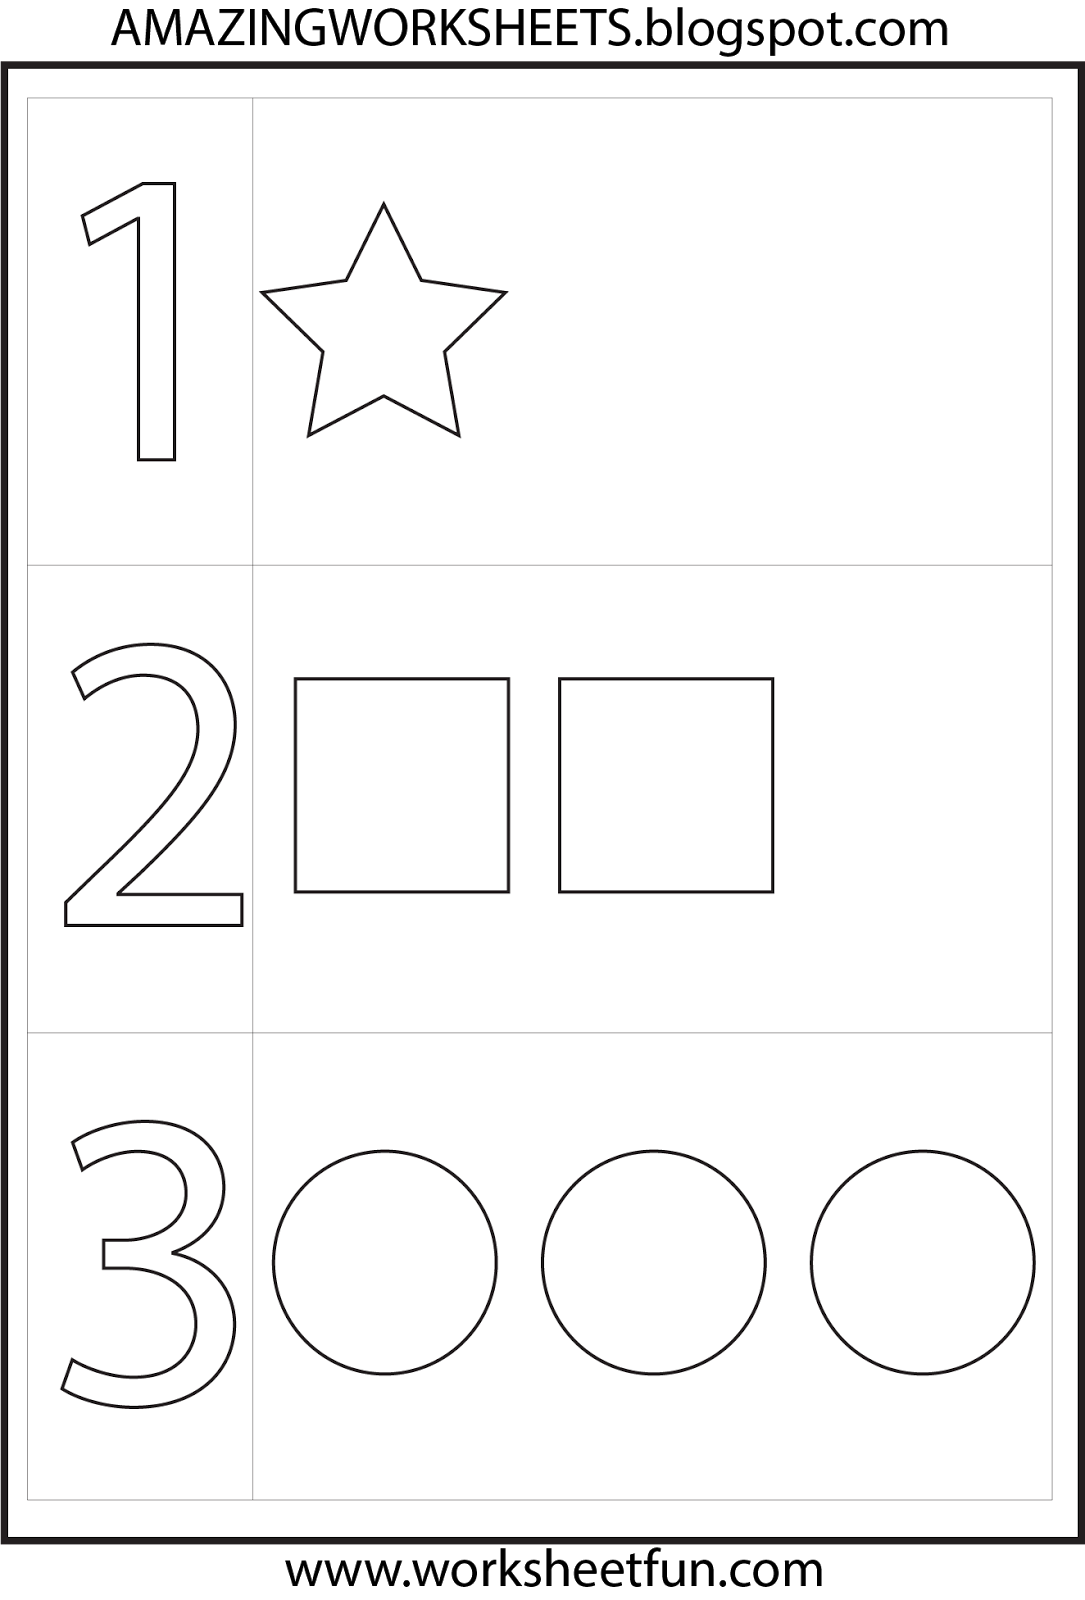 92 Number Worksheets For Toddlers Printable Download